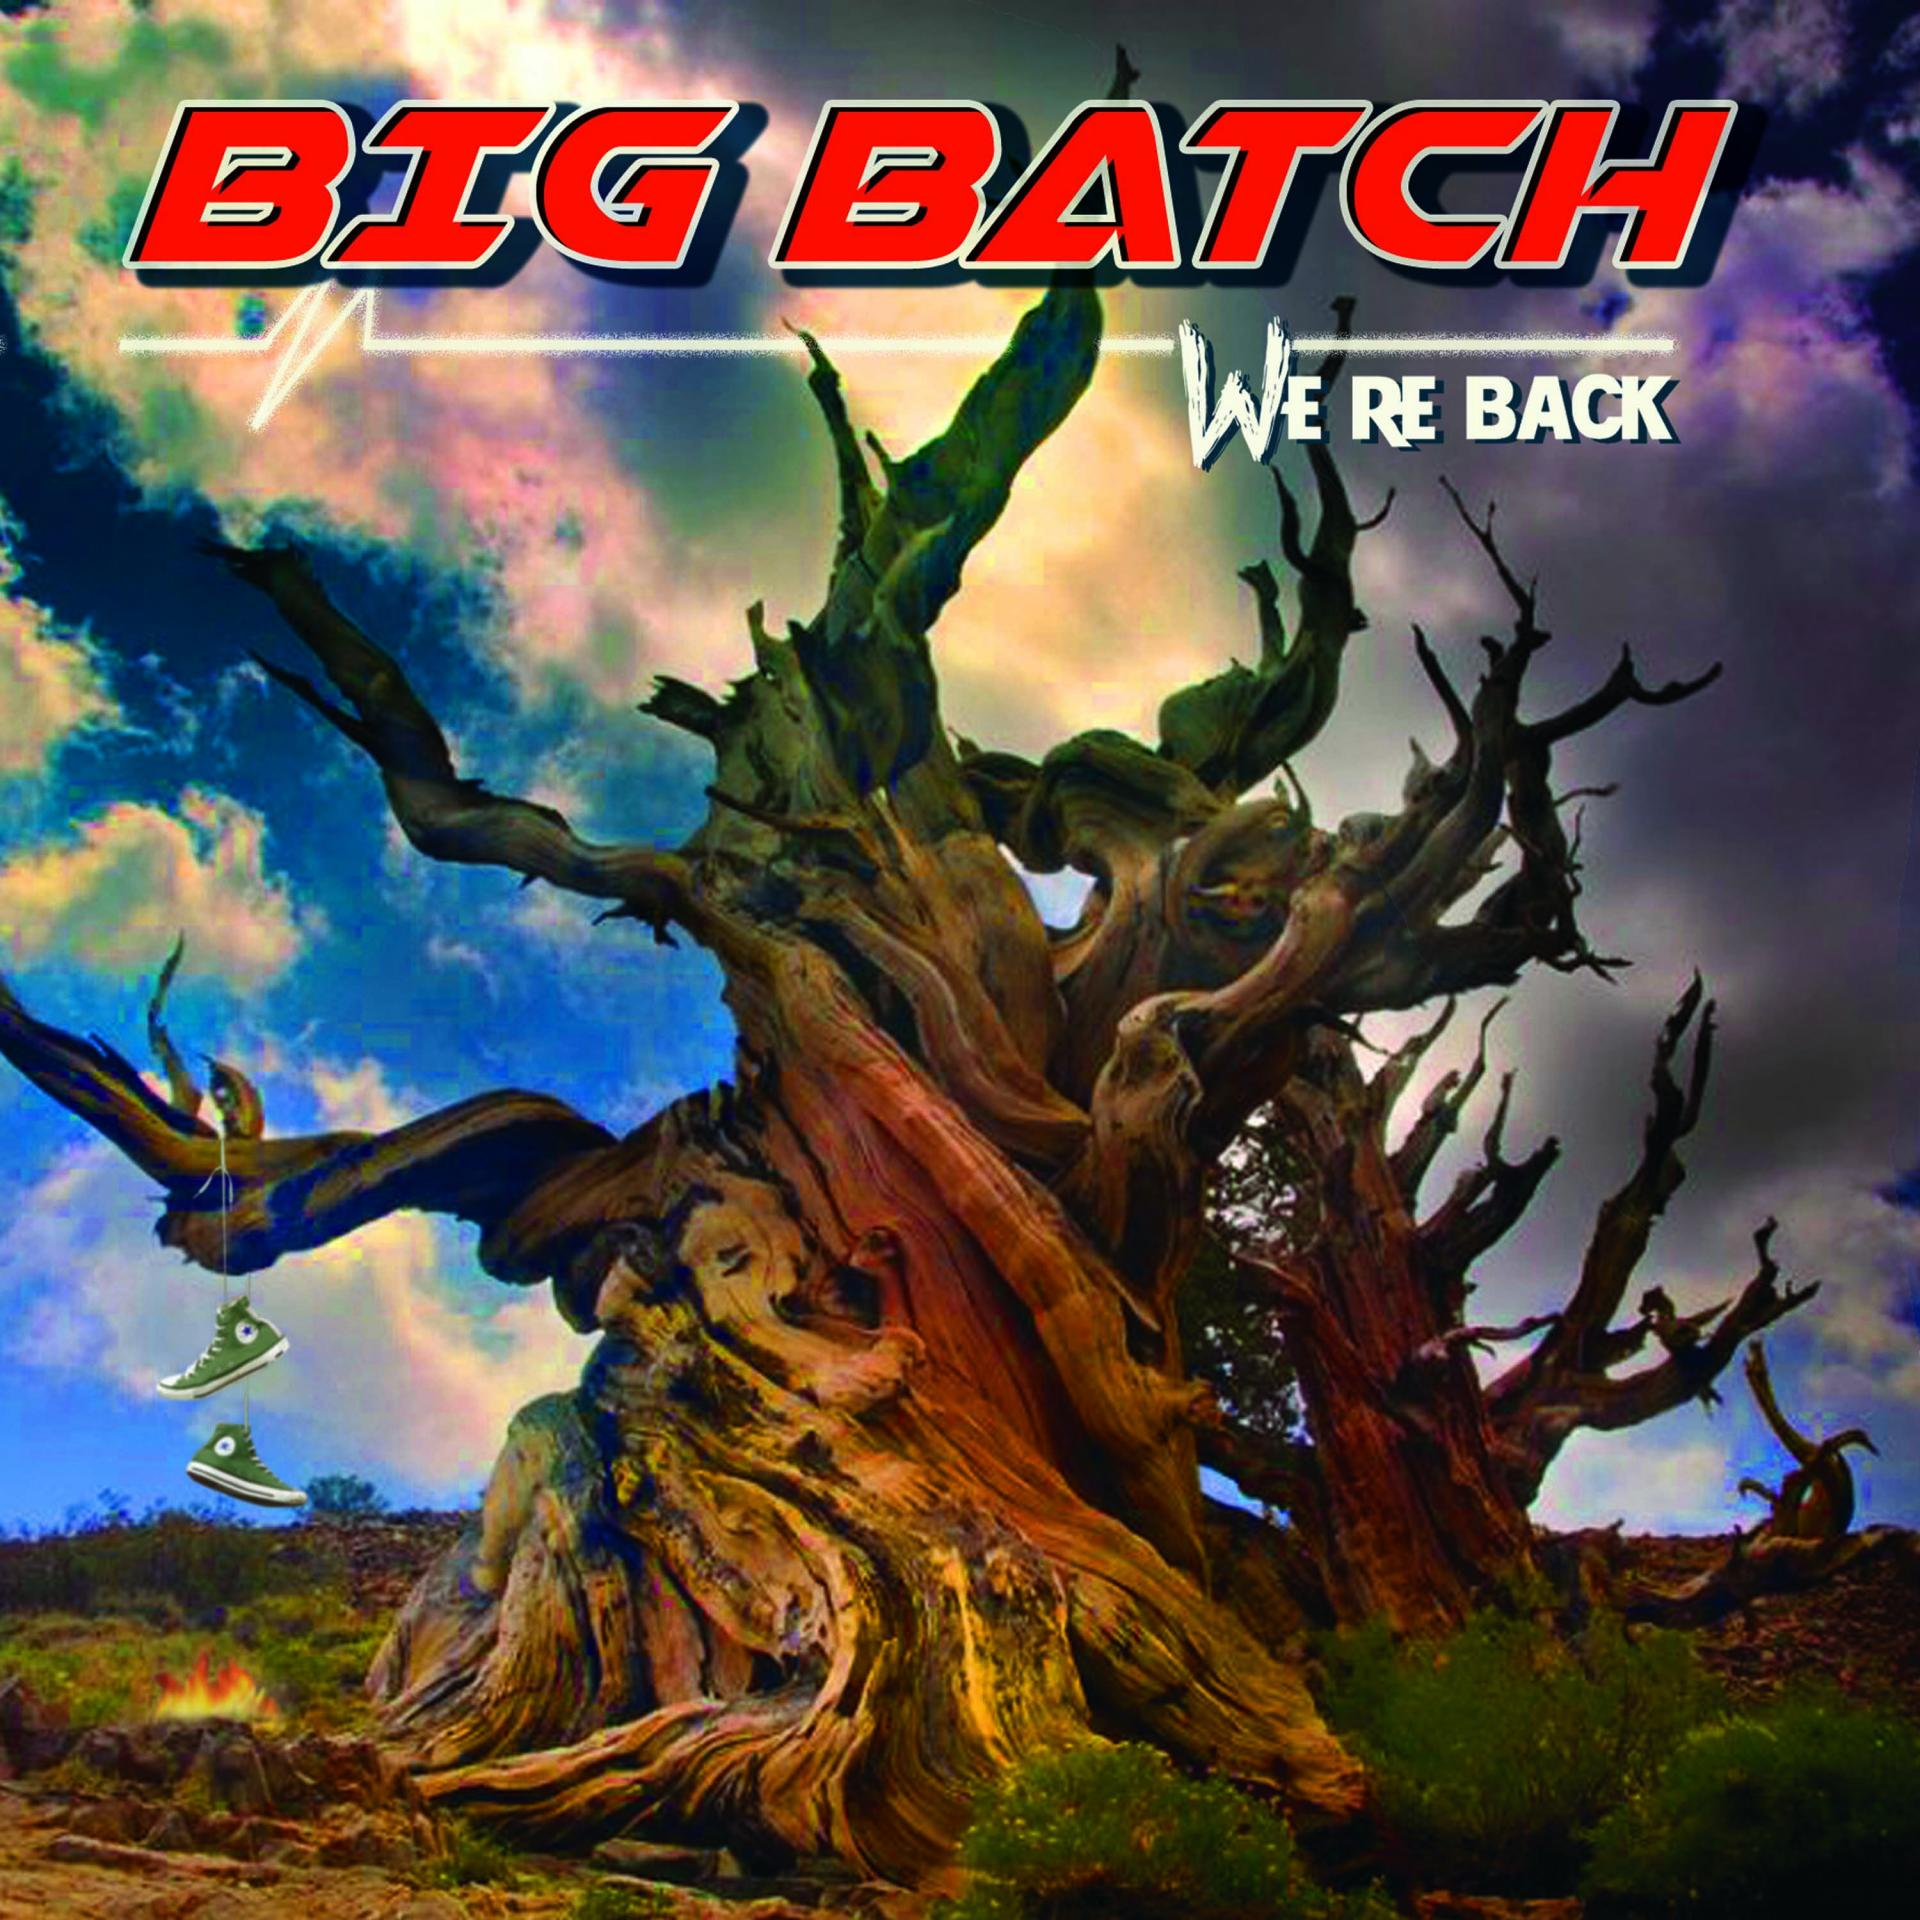 Chronique d'album : BIG BATCH (Rock),